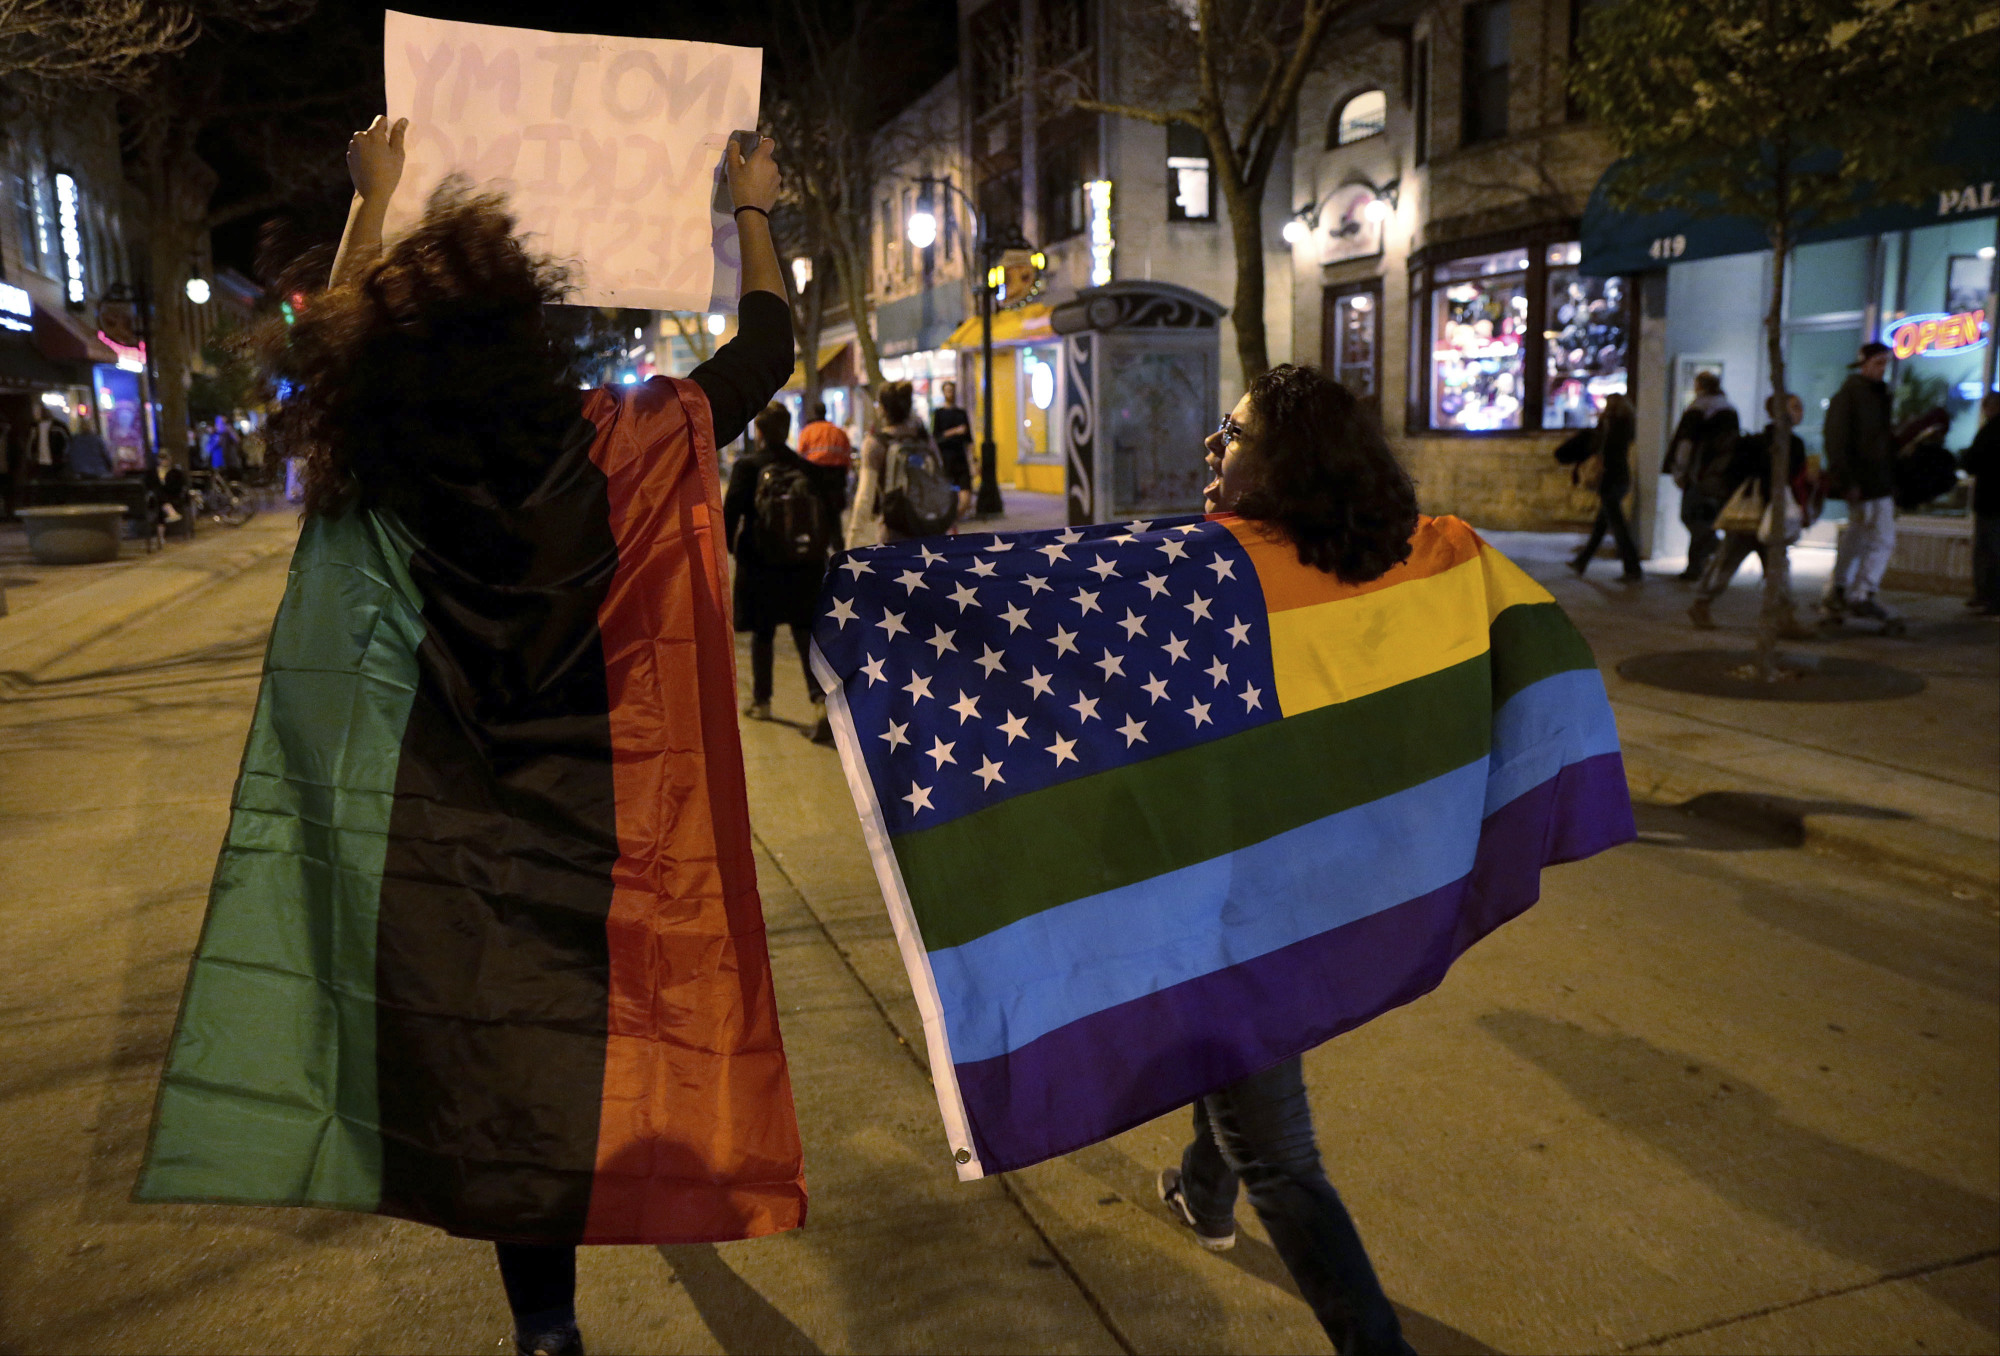 Two of a few thousand protesters, one holding a rainbow-colored flag, march up State Street from UW-Madison's Bascom Hall to the State Capitol, protesting President-elect Donald Trump in Madison, Wisconsin, on Nov. 10. | MICHAEL P. KING / WISCONSIN STATE JOURNAL VIA AP